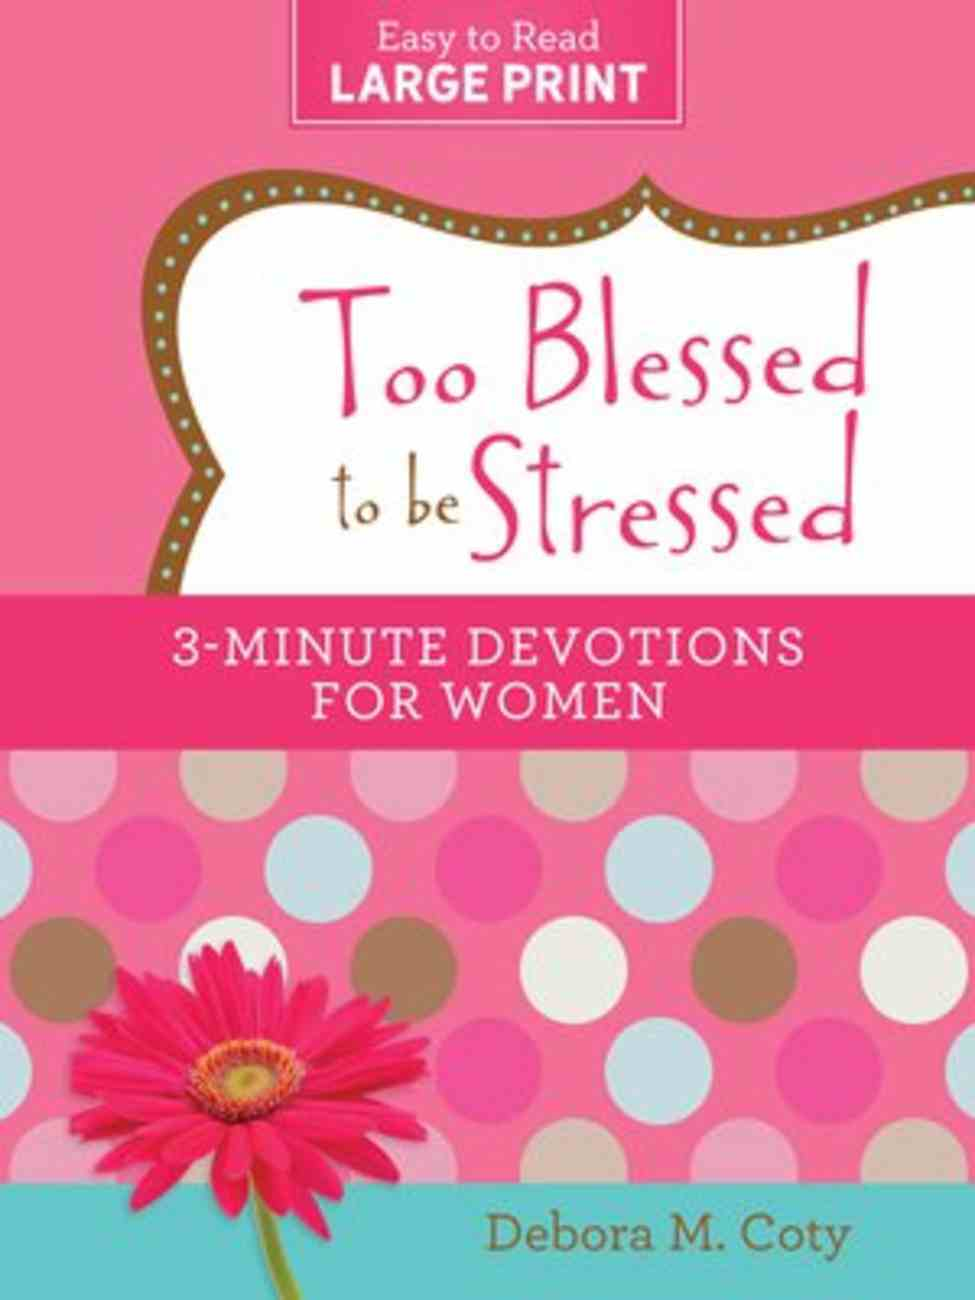 Too Blessed to Be Stressed: 3-Minute Devotions For Women (Large Print) Paperback